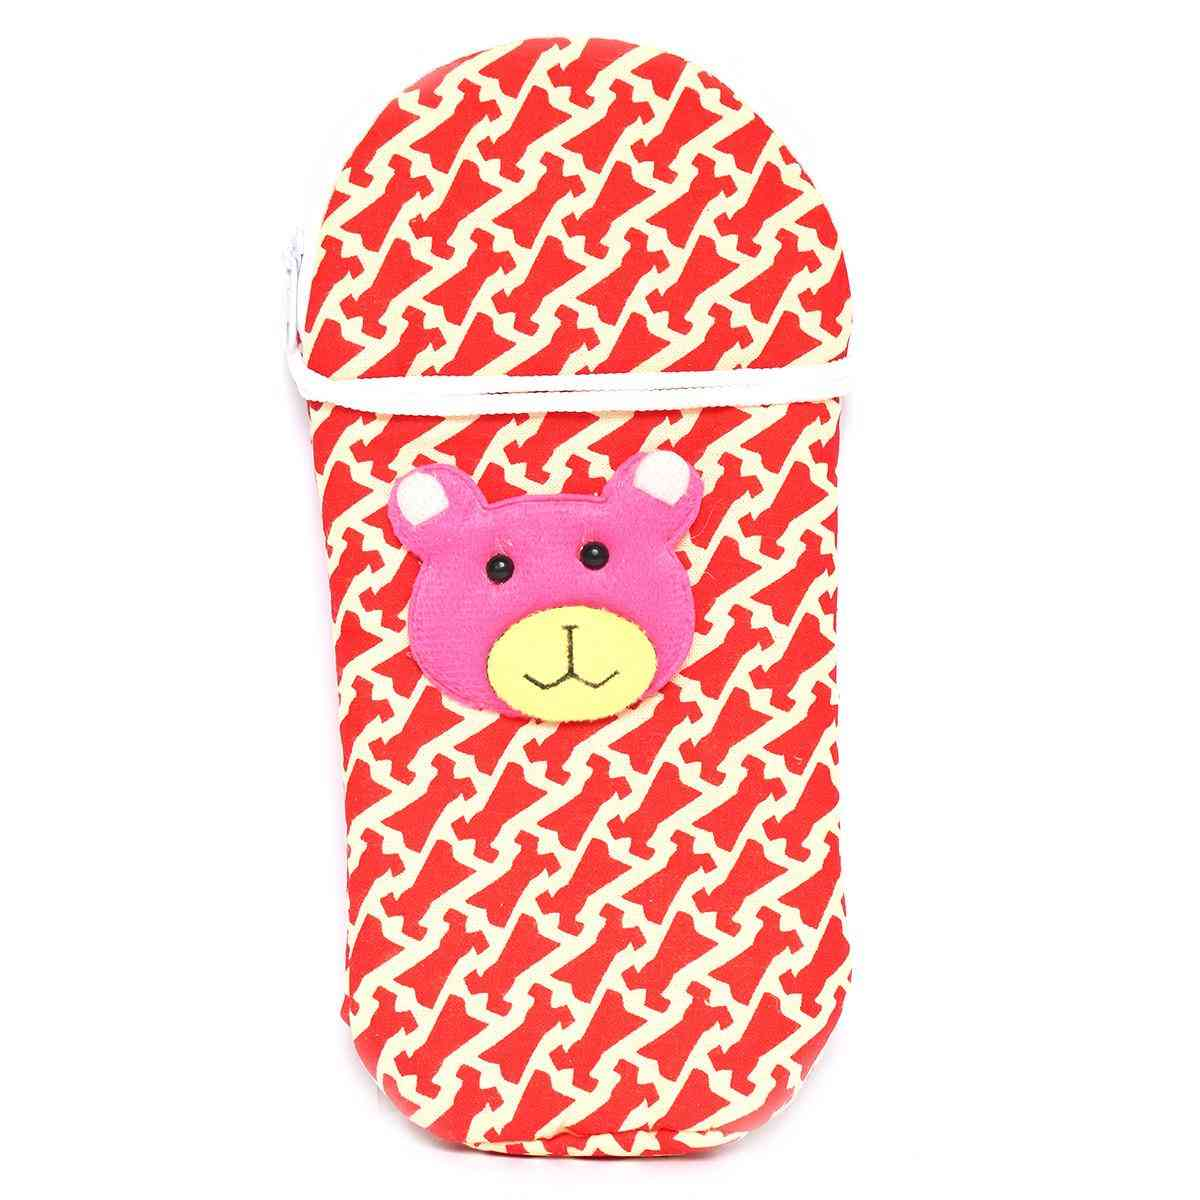 Vitamin Baby Cartoon Character 9x4 Inches Feeder Cover for Feeder Bottle with String  Red